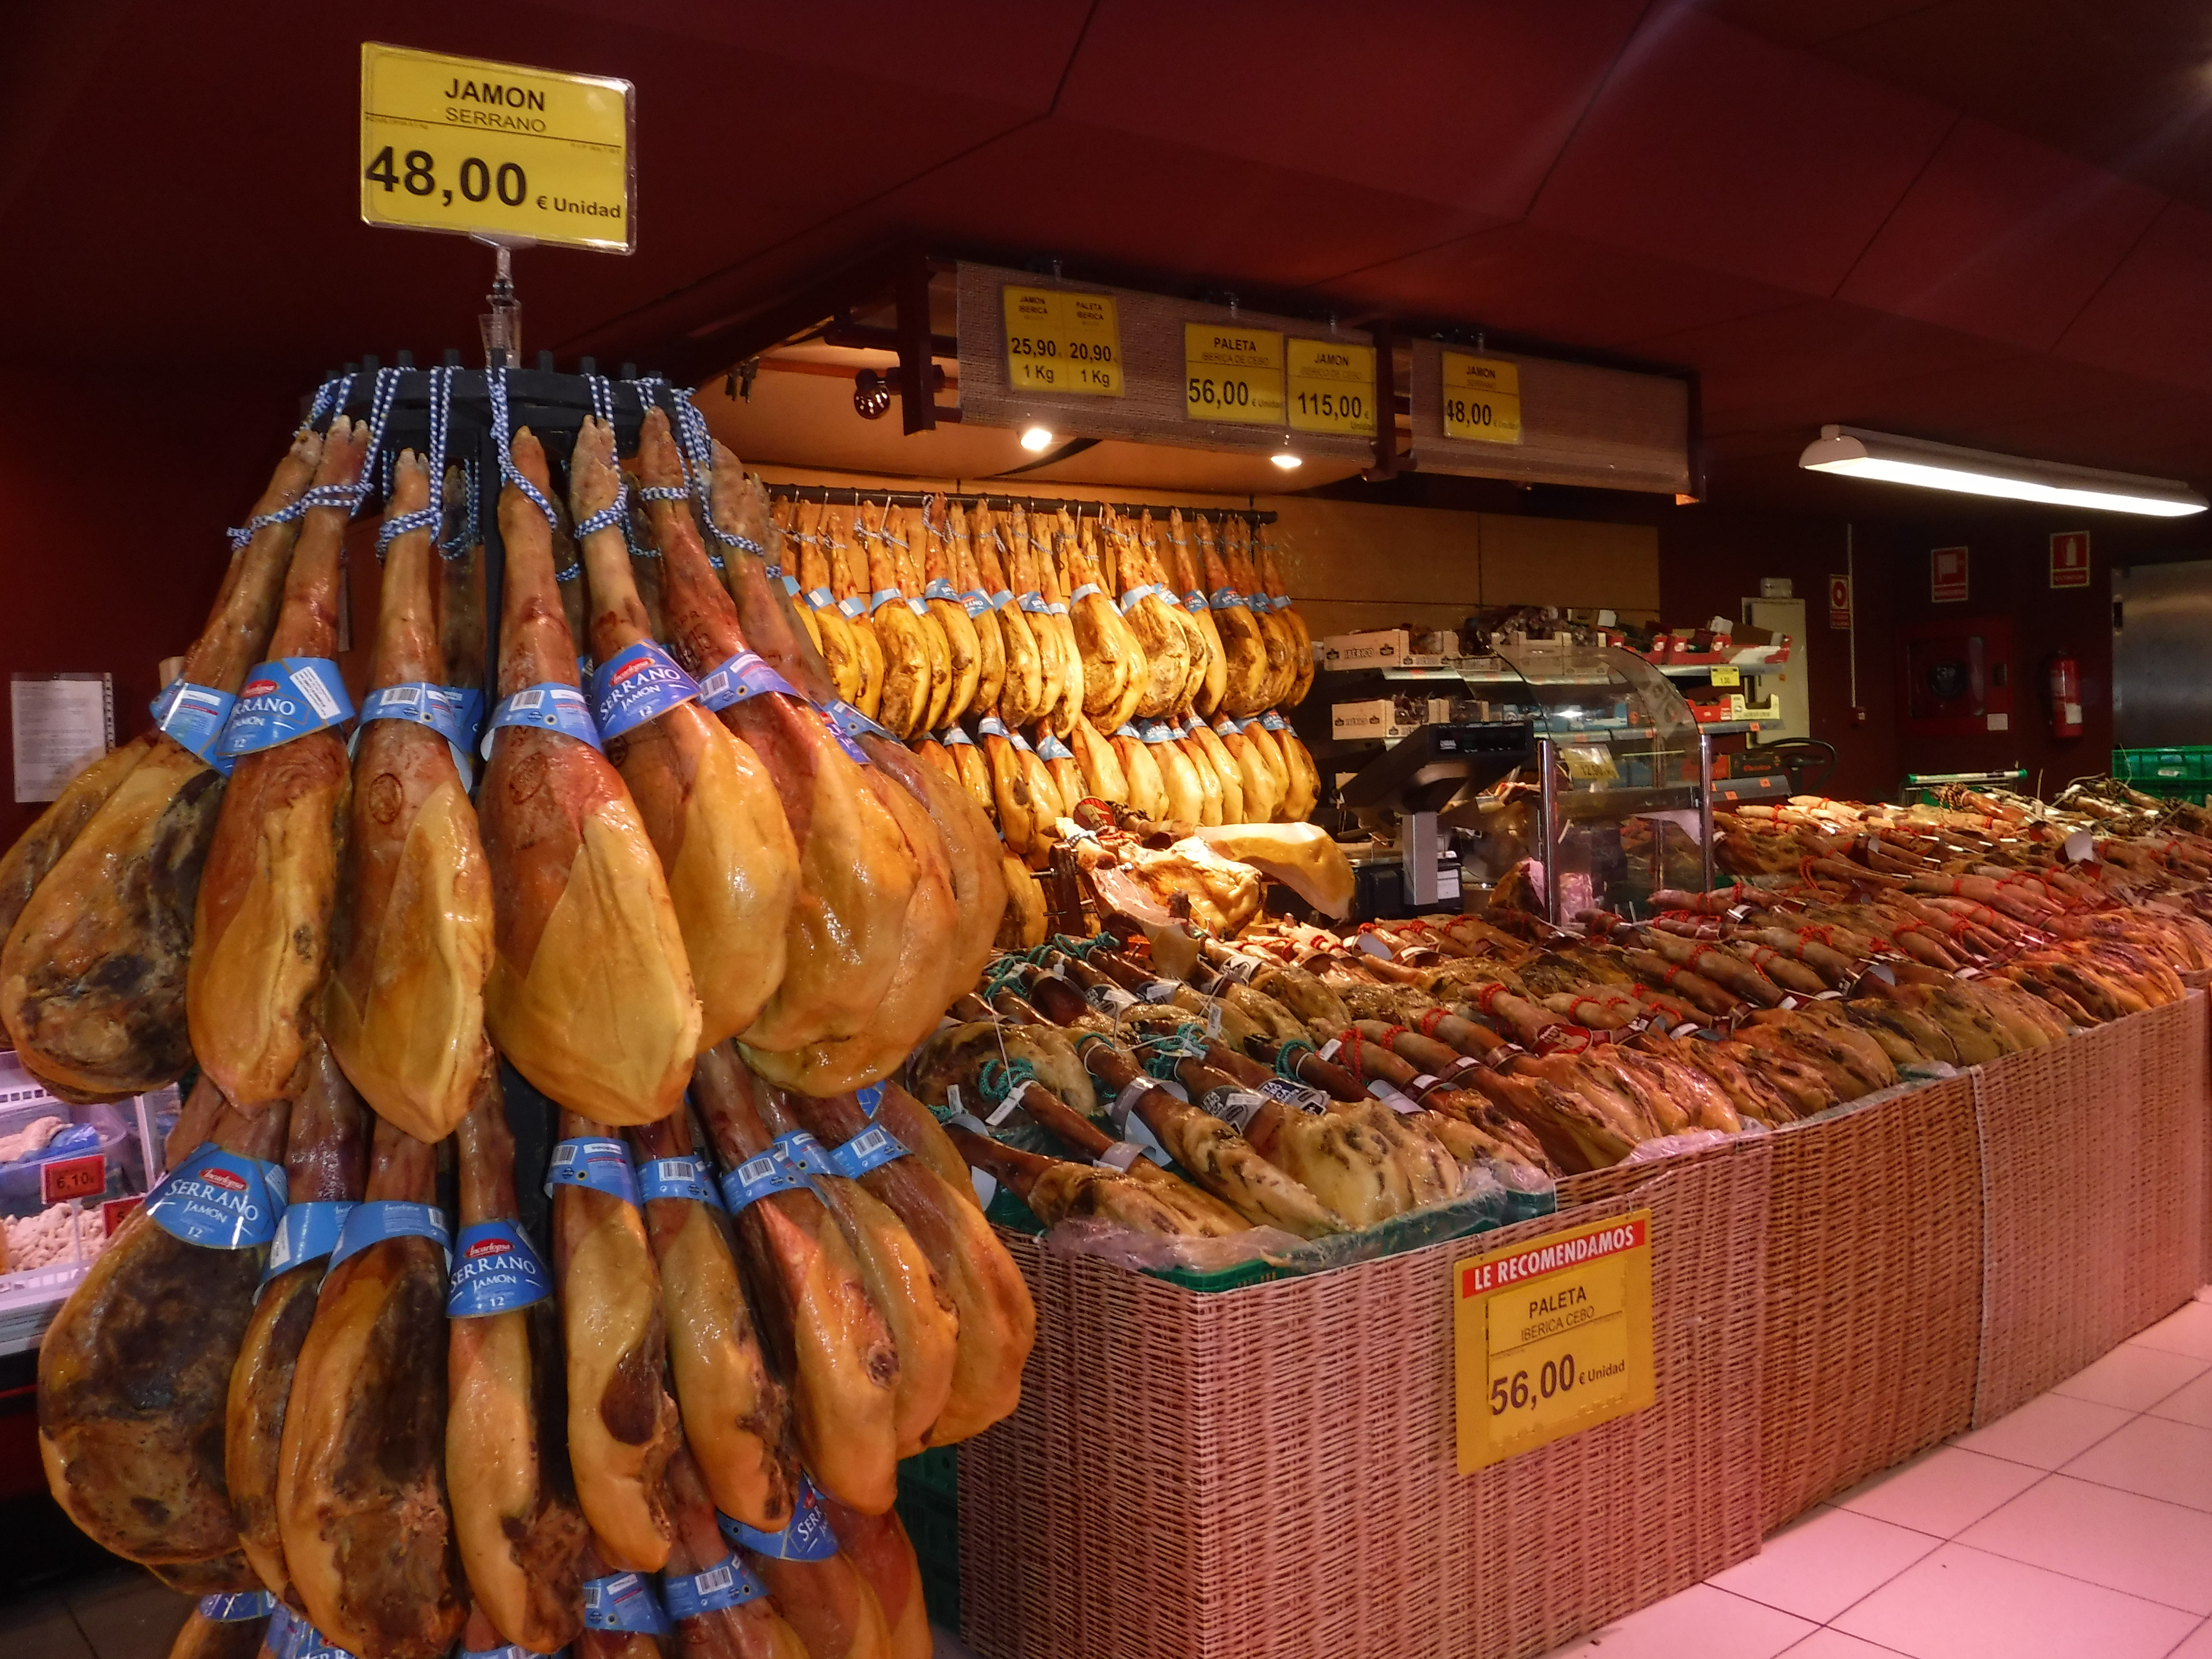 Jamon on display in our local supermercado.